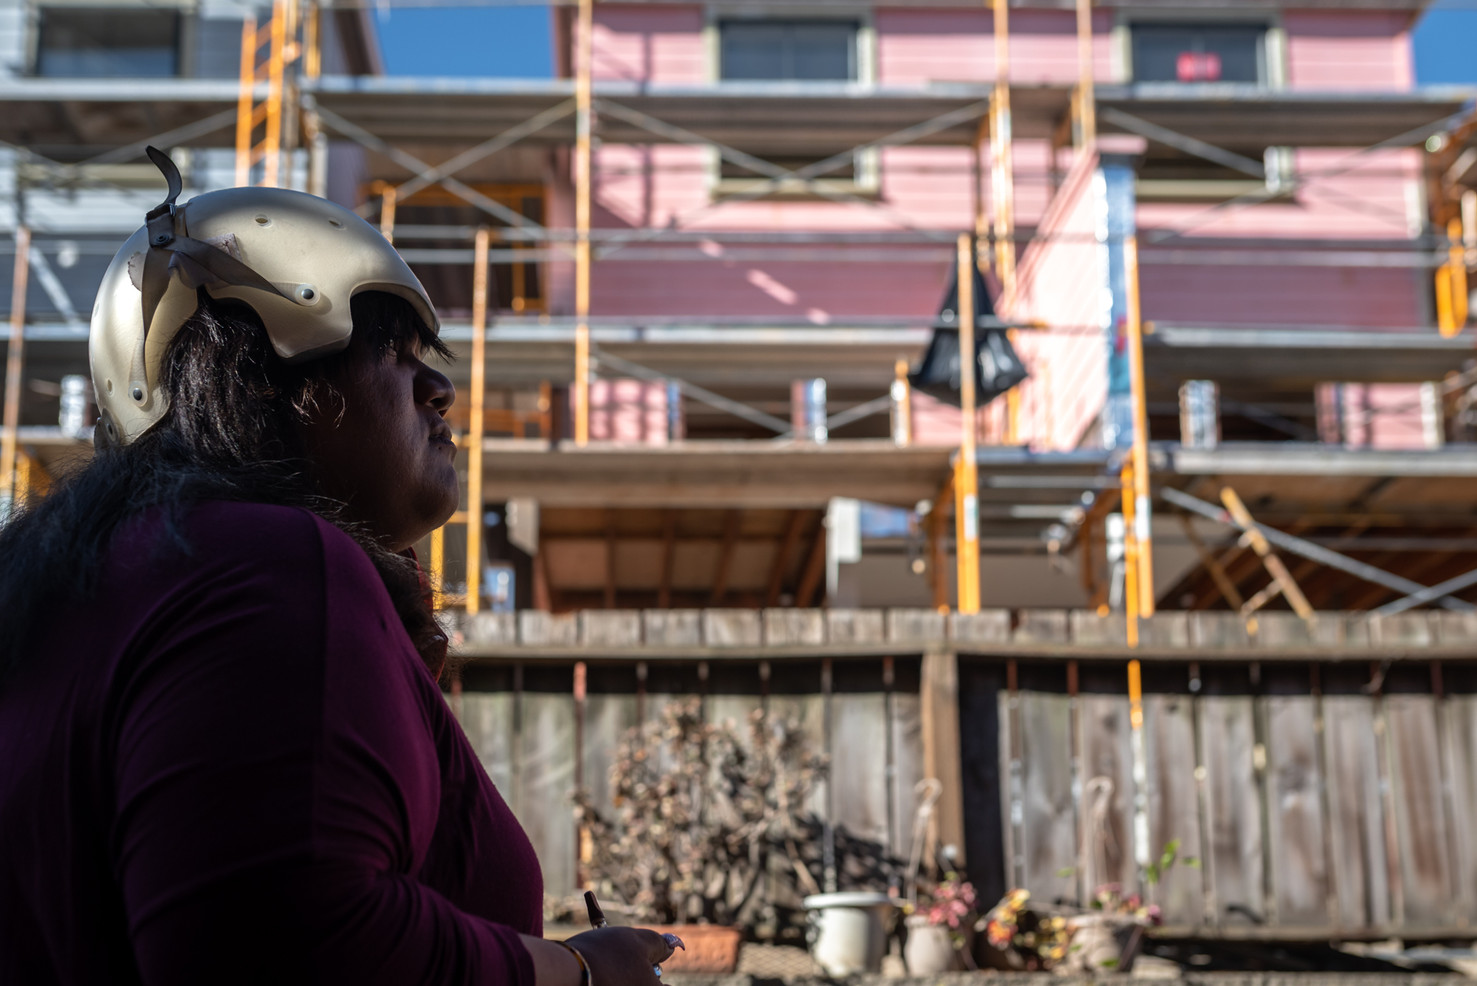 Looming high over their backyard, public housing next door is under renovation. Experiencing memory loss and speech impediment from her ongoing battle with brain lesions, Gaynor's sister Jennifer is required to wear a helmet.